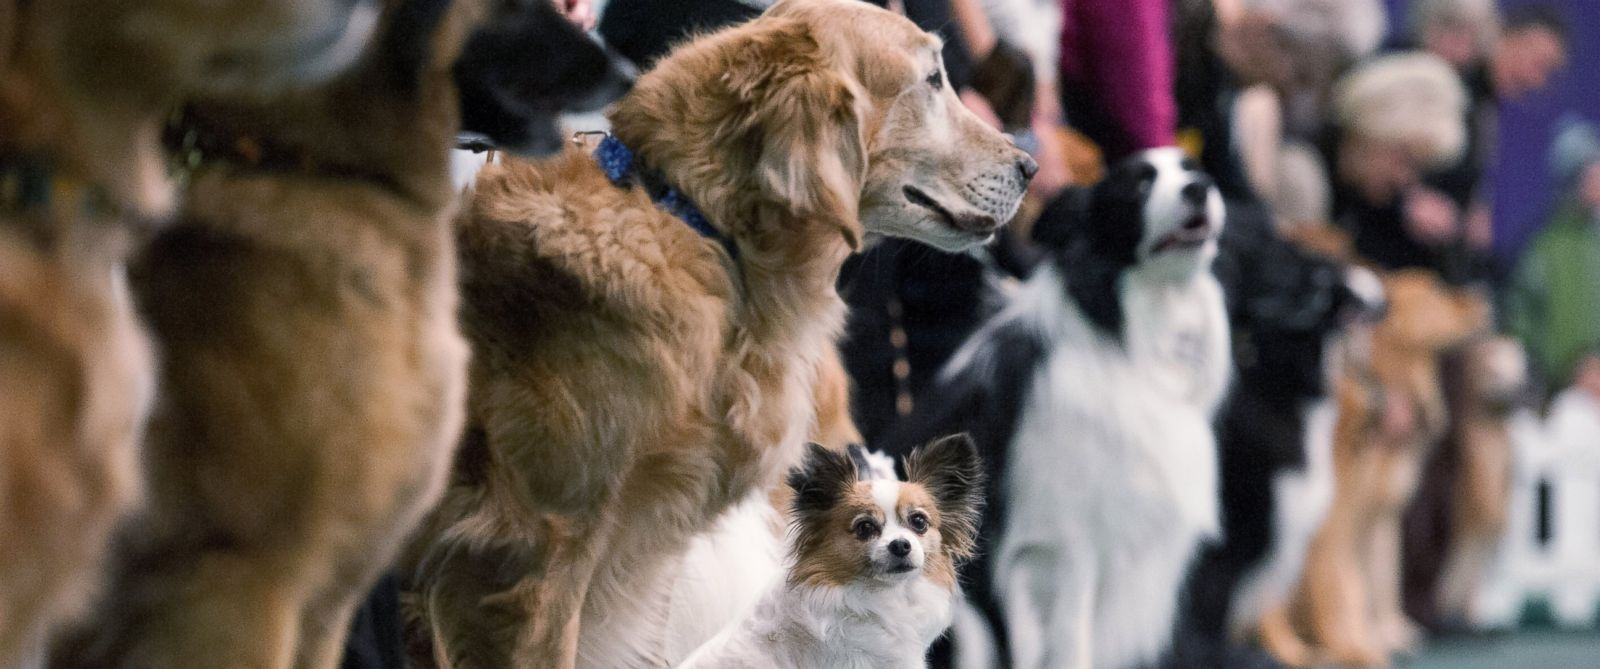 PHOTO: Dogs compete in the obedience competition line up for judges during the annual Westminster Kennel Club dog show at Madison Square Garden, Feb. 15, 2016, in New York City.